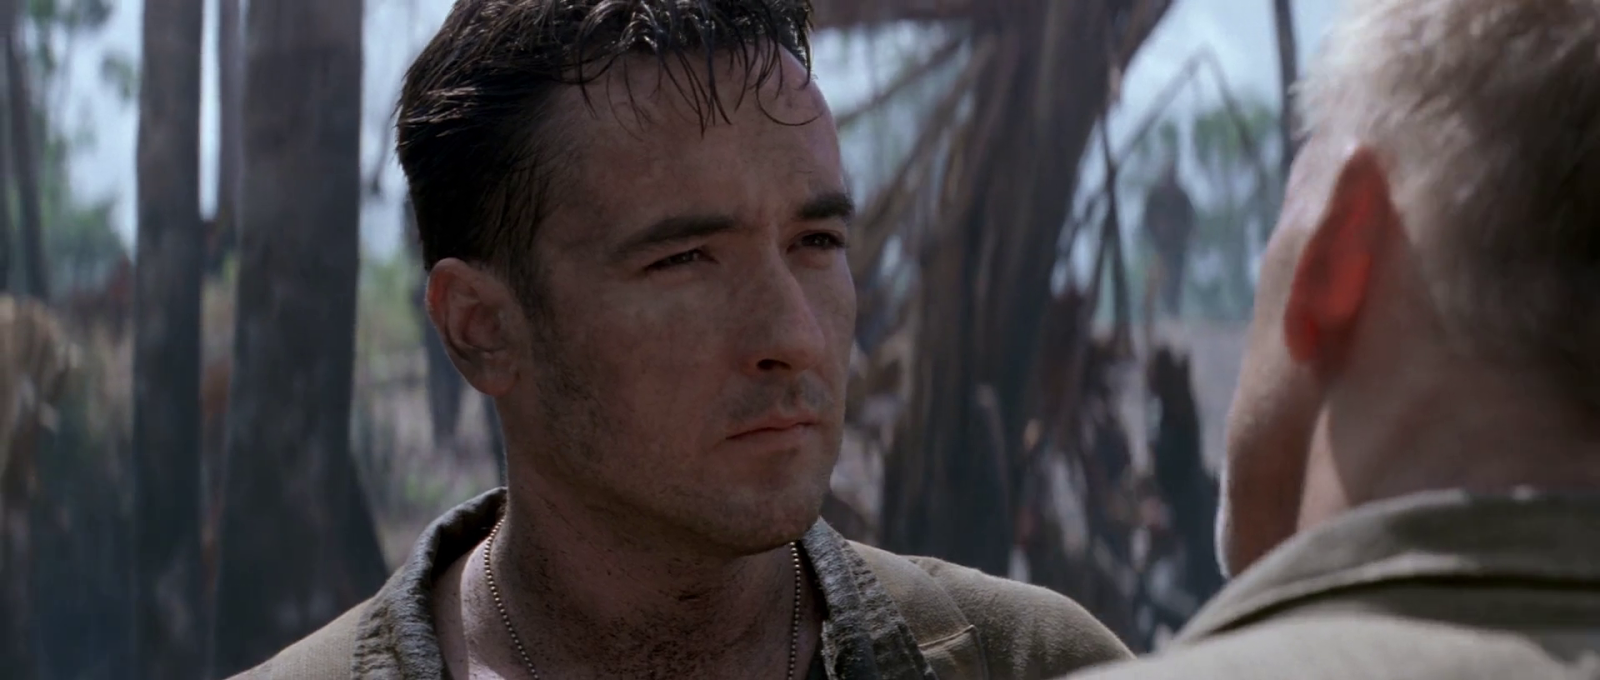 The Thin Red Line62 John Cusack